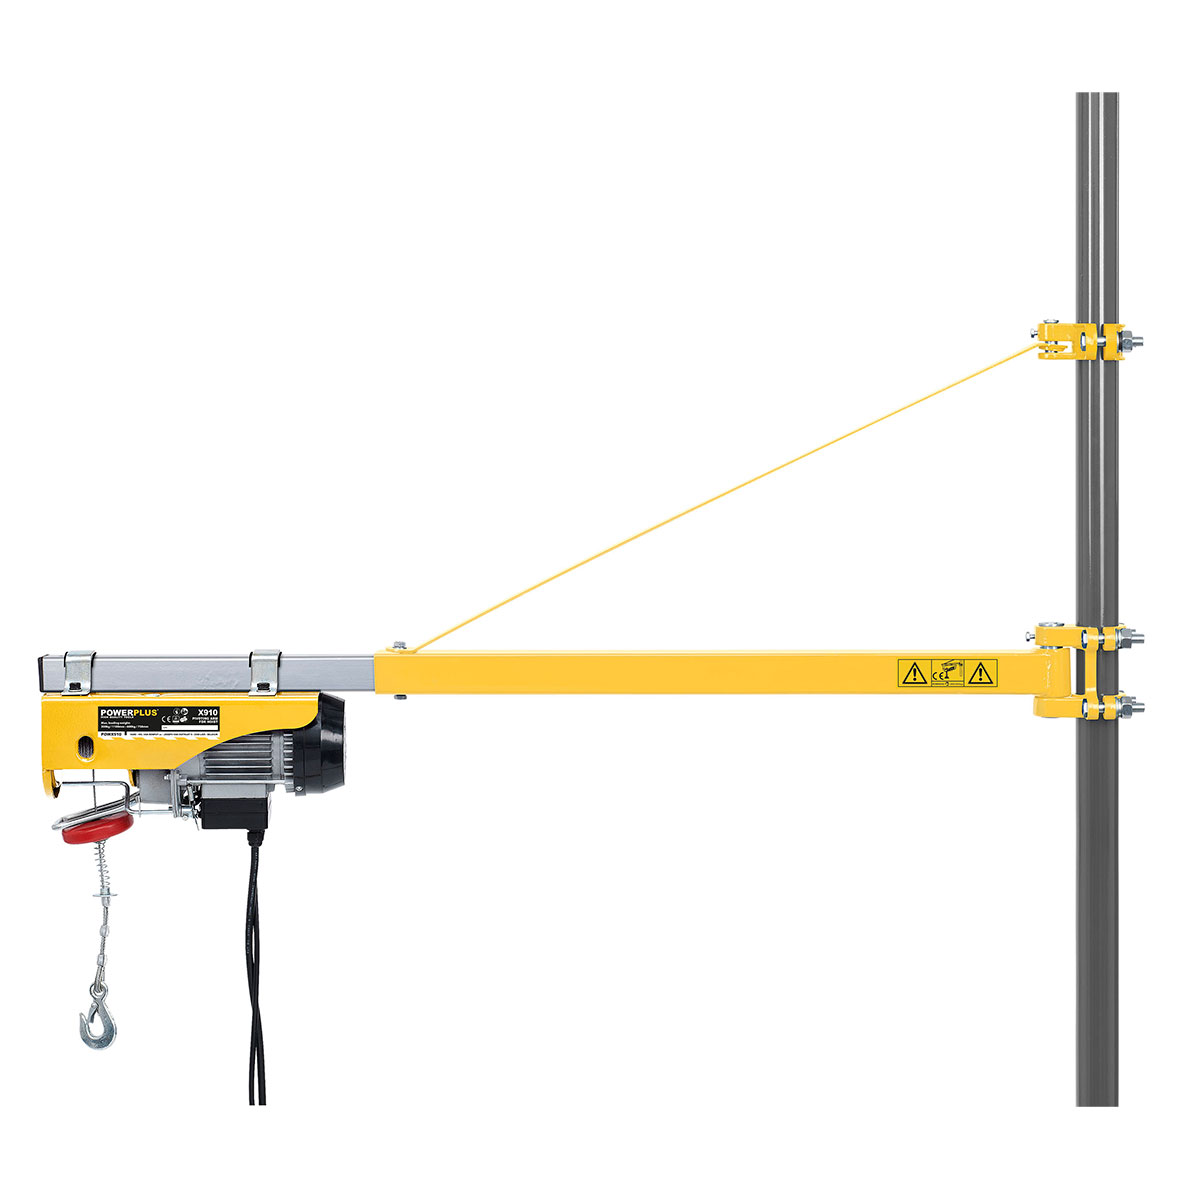 Swing Arm Hoist Mount : Powerplus mm to extending electric hoist swing